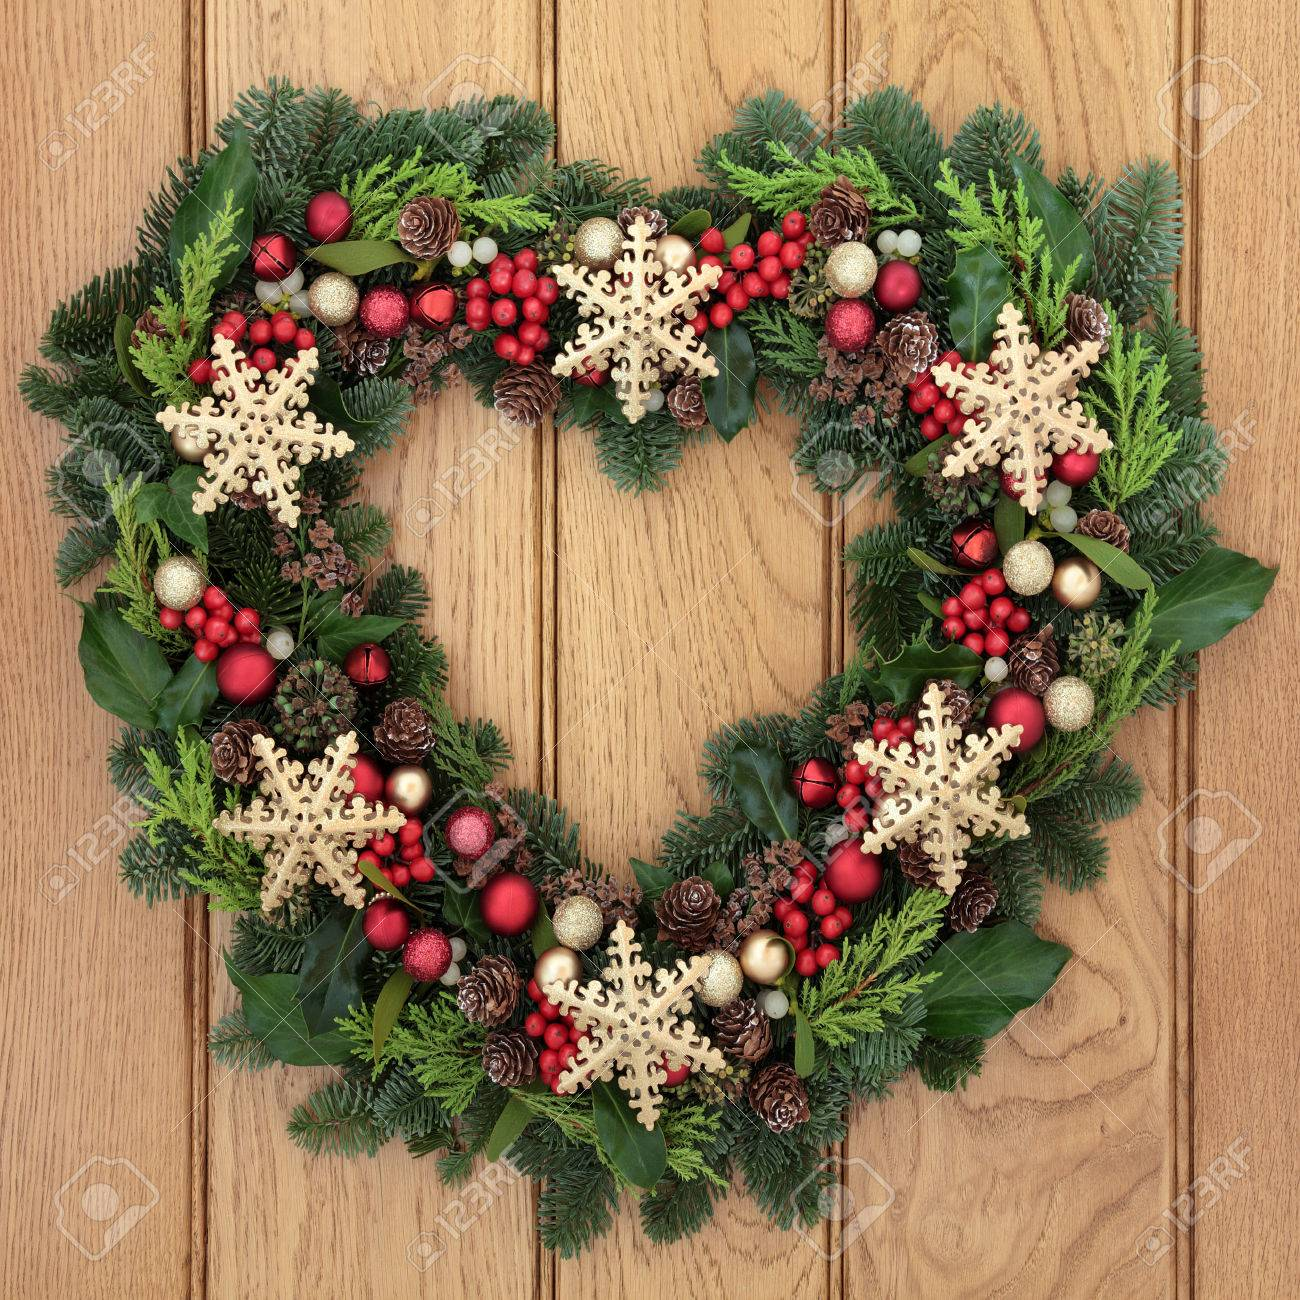 Christmas Heart Wreath.Christmas Heart Shaped Wreath With Gold Snowflake Bauble Decorations